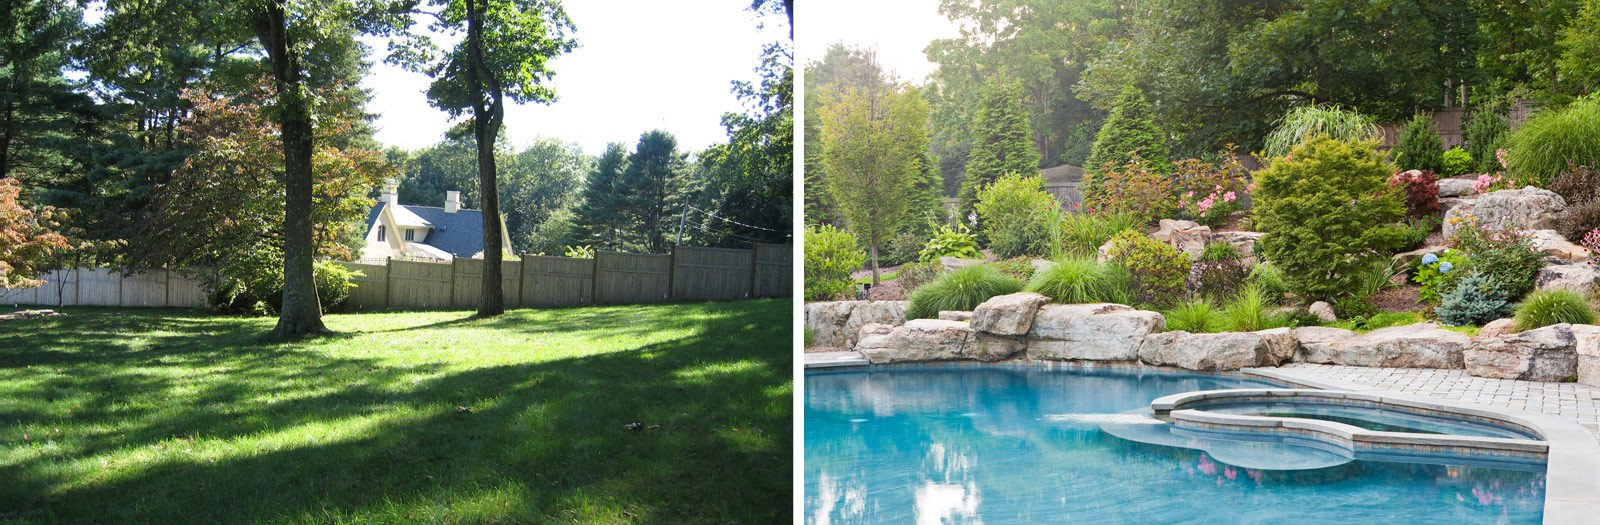 Cording landscape design pool construction before and for Pool design inc bordentown nj